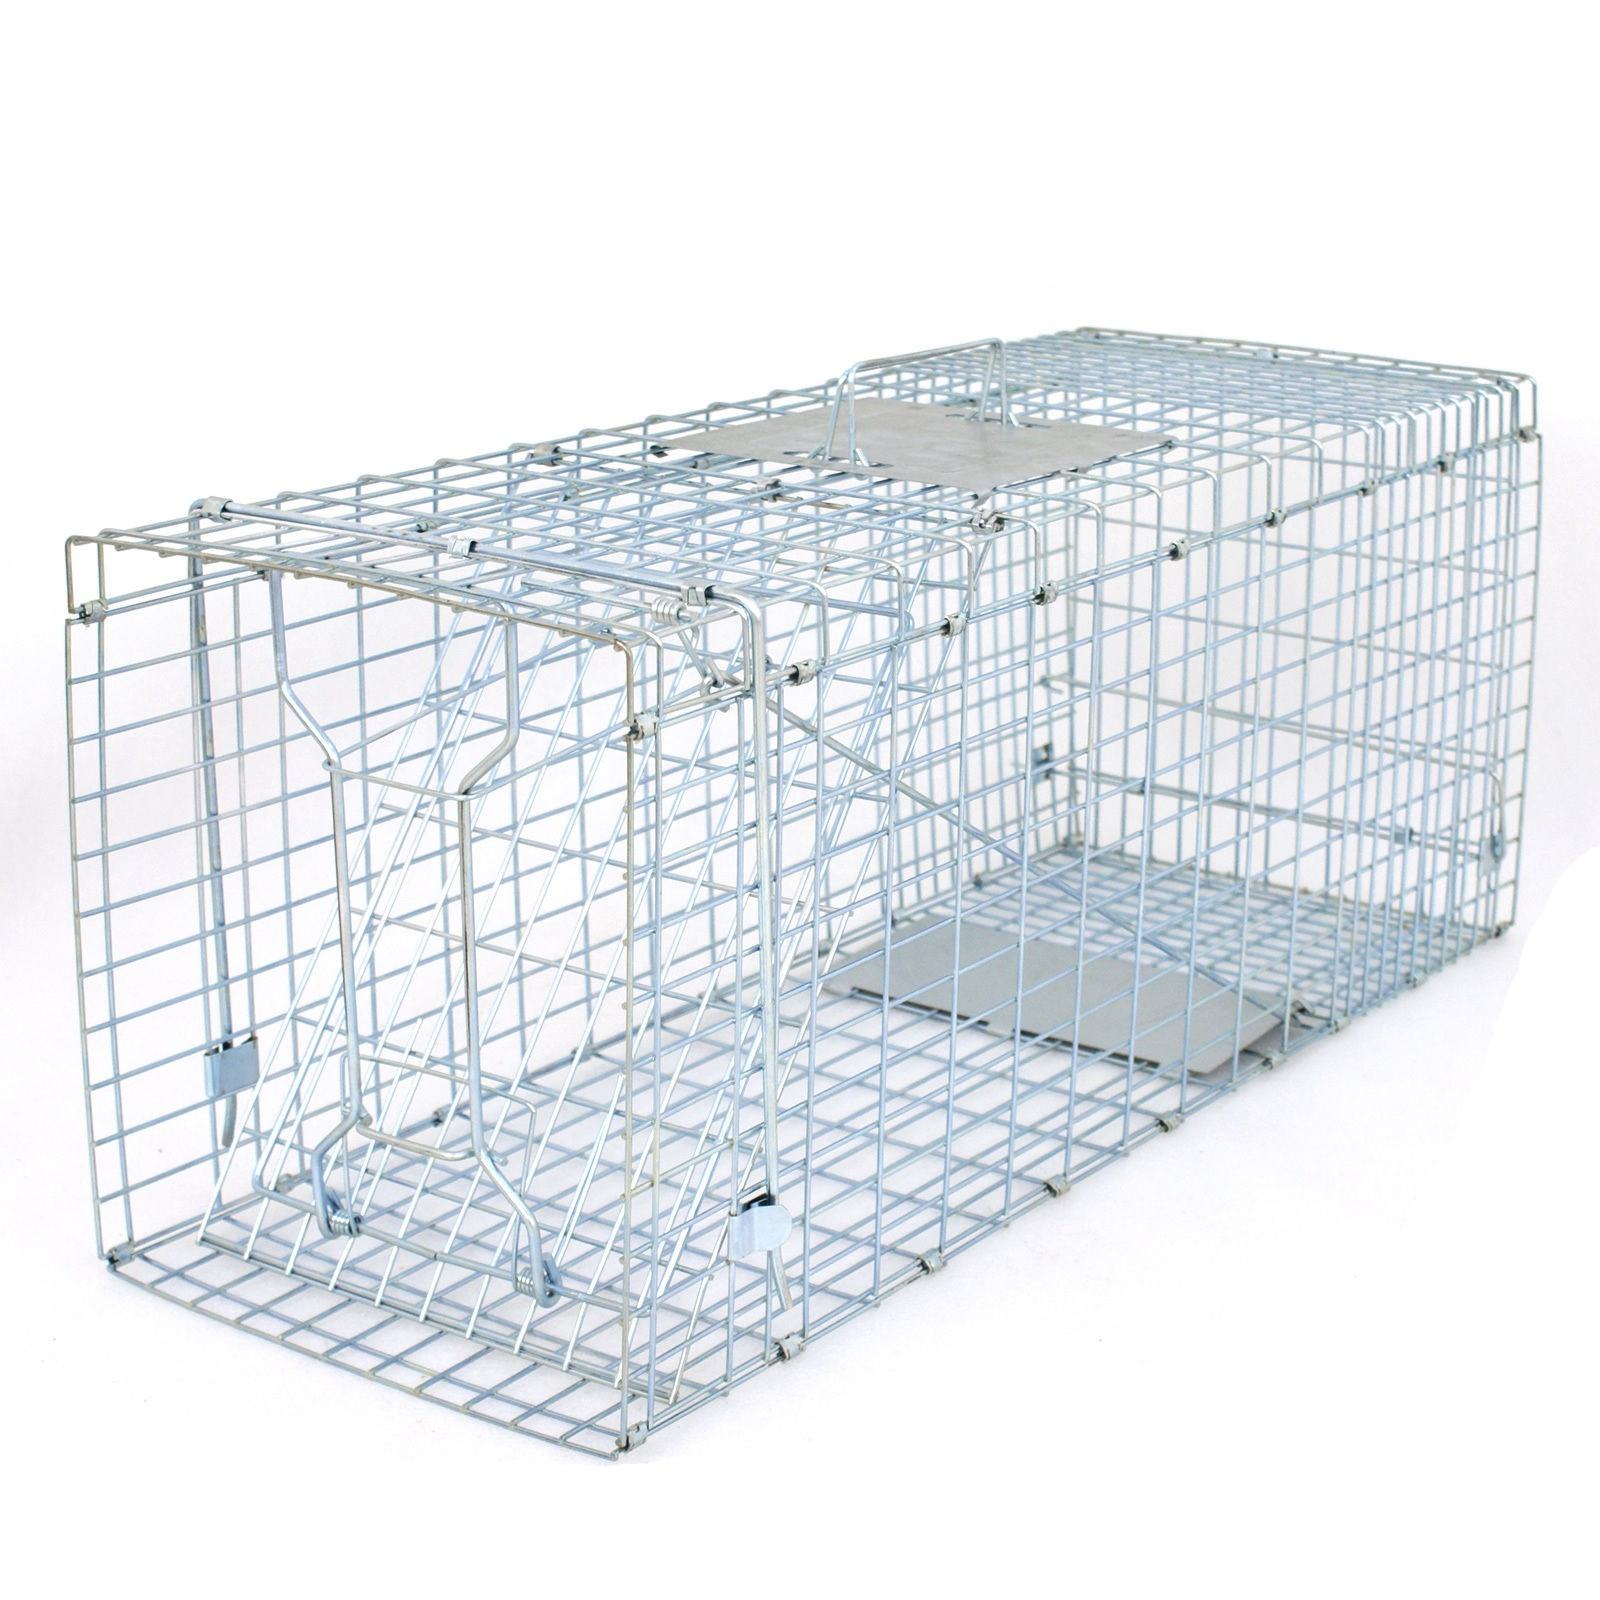 Folded Humane Live Animal Cage Trap for Rats,Cats,Rabbits,Raccoons,Martens,Foxes,Pig,Wild Boars,Birds,Pigeons Manufacturer